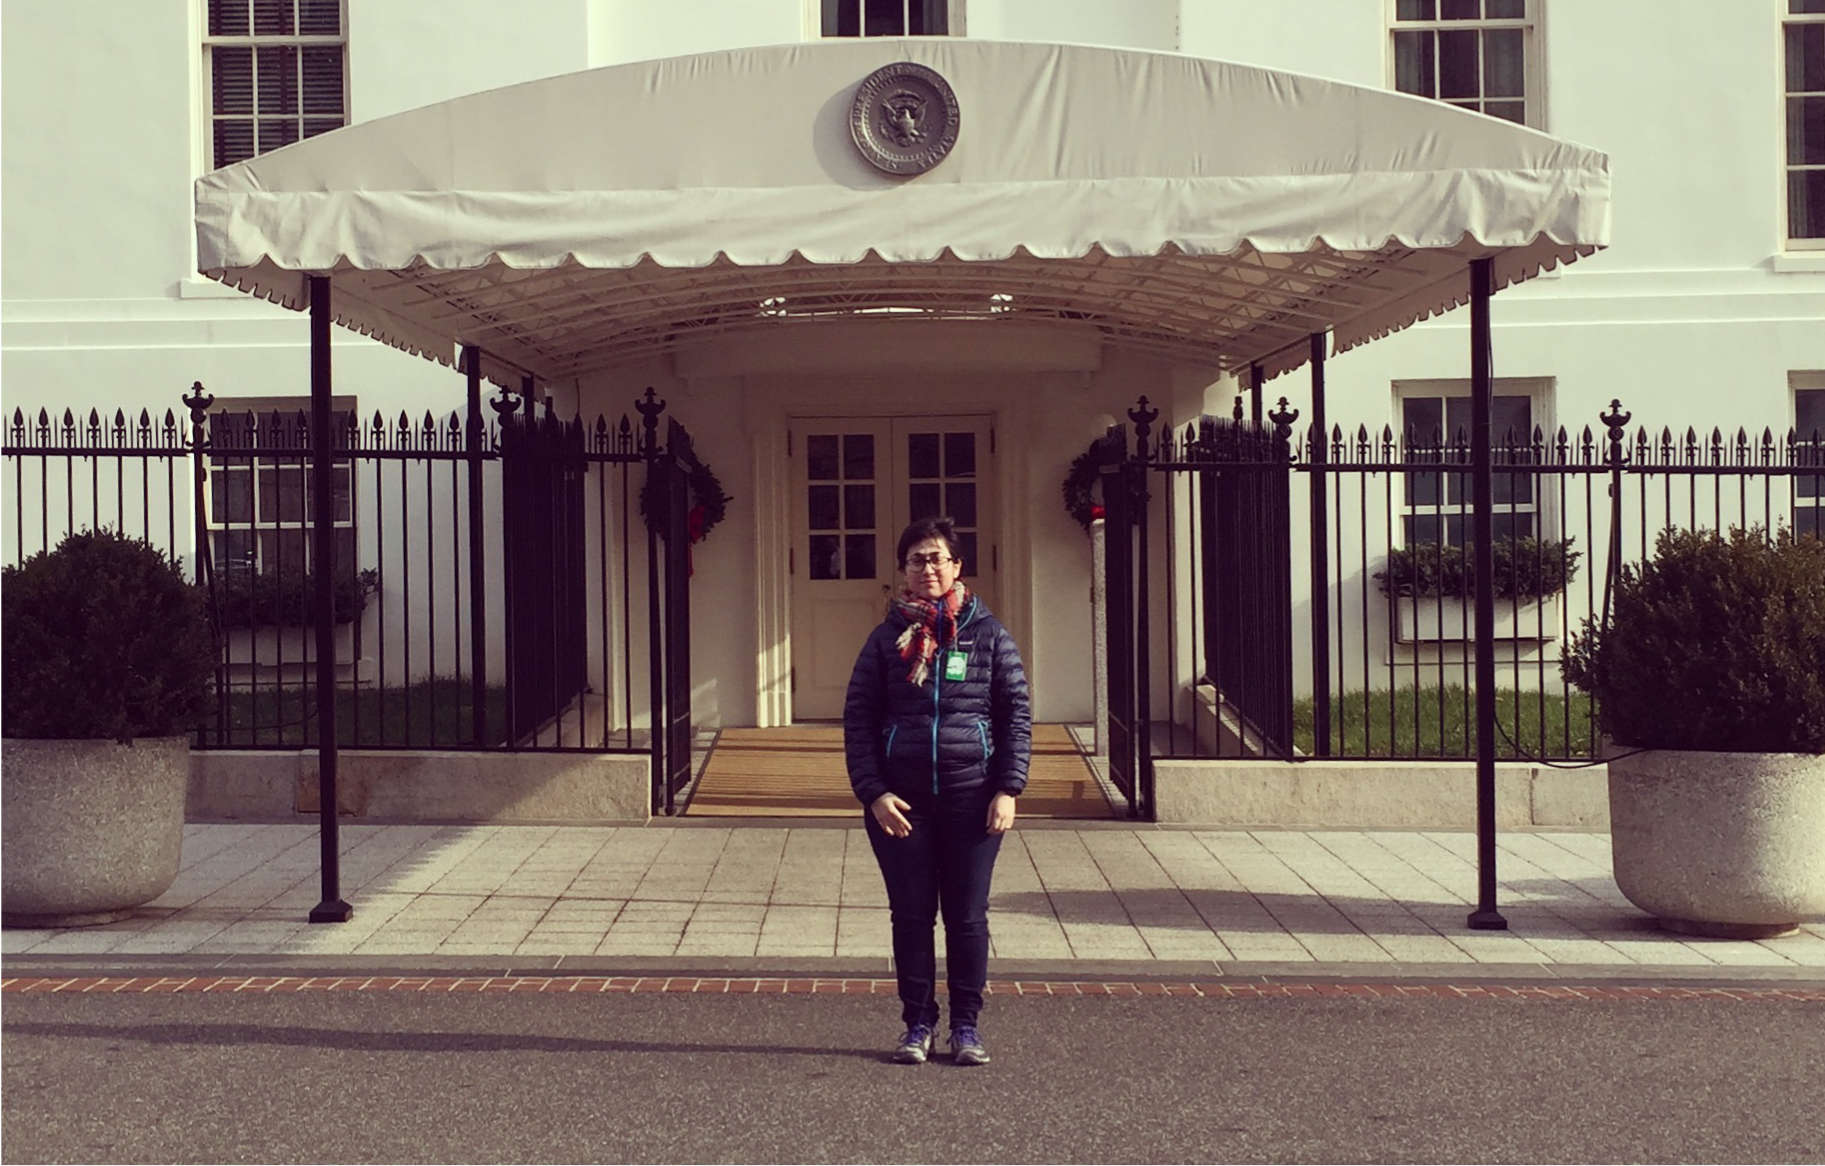 Julia Elman in front of the entrance to the West Wing, The White House